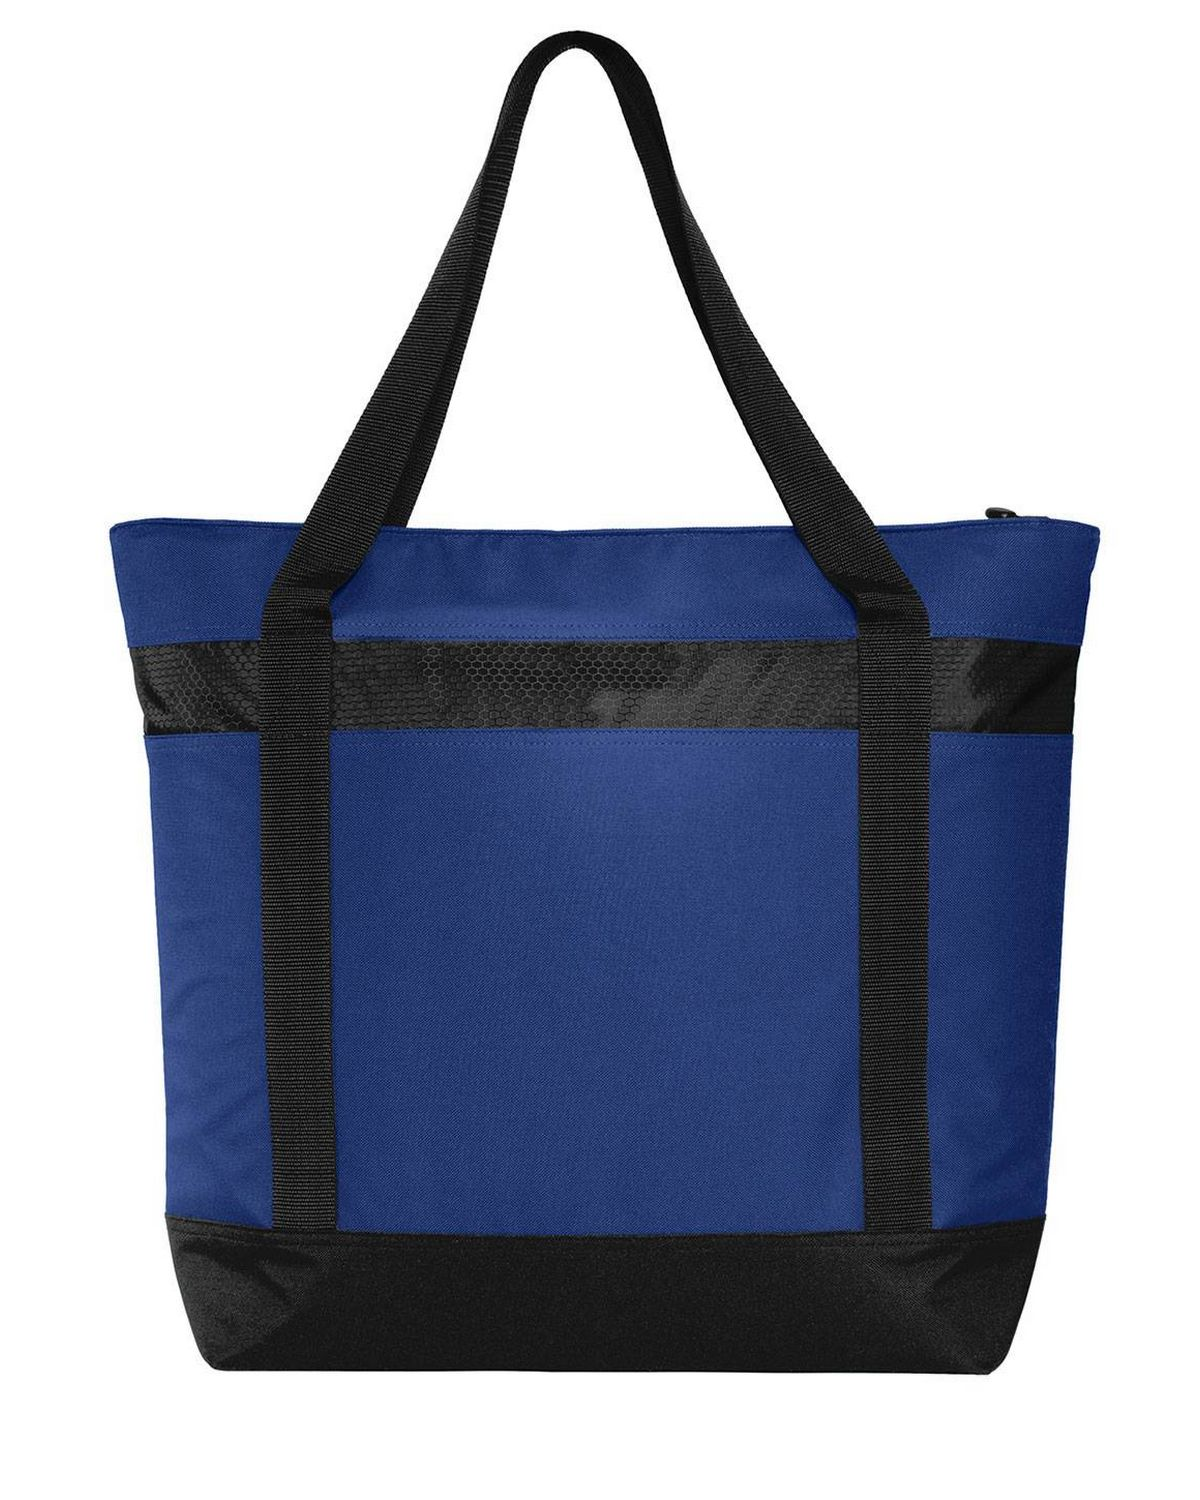 Port Authority BG527 Large Tote Cooler